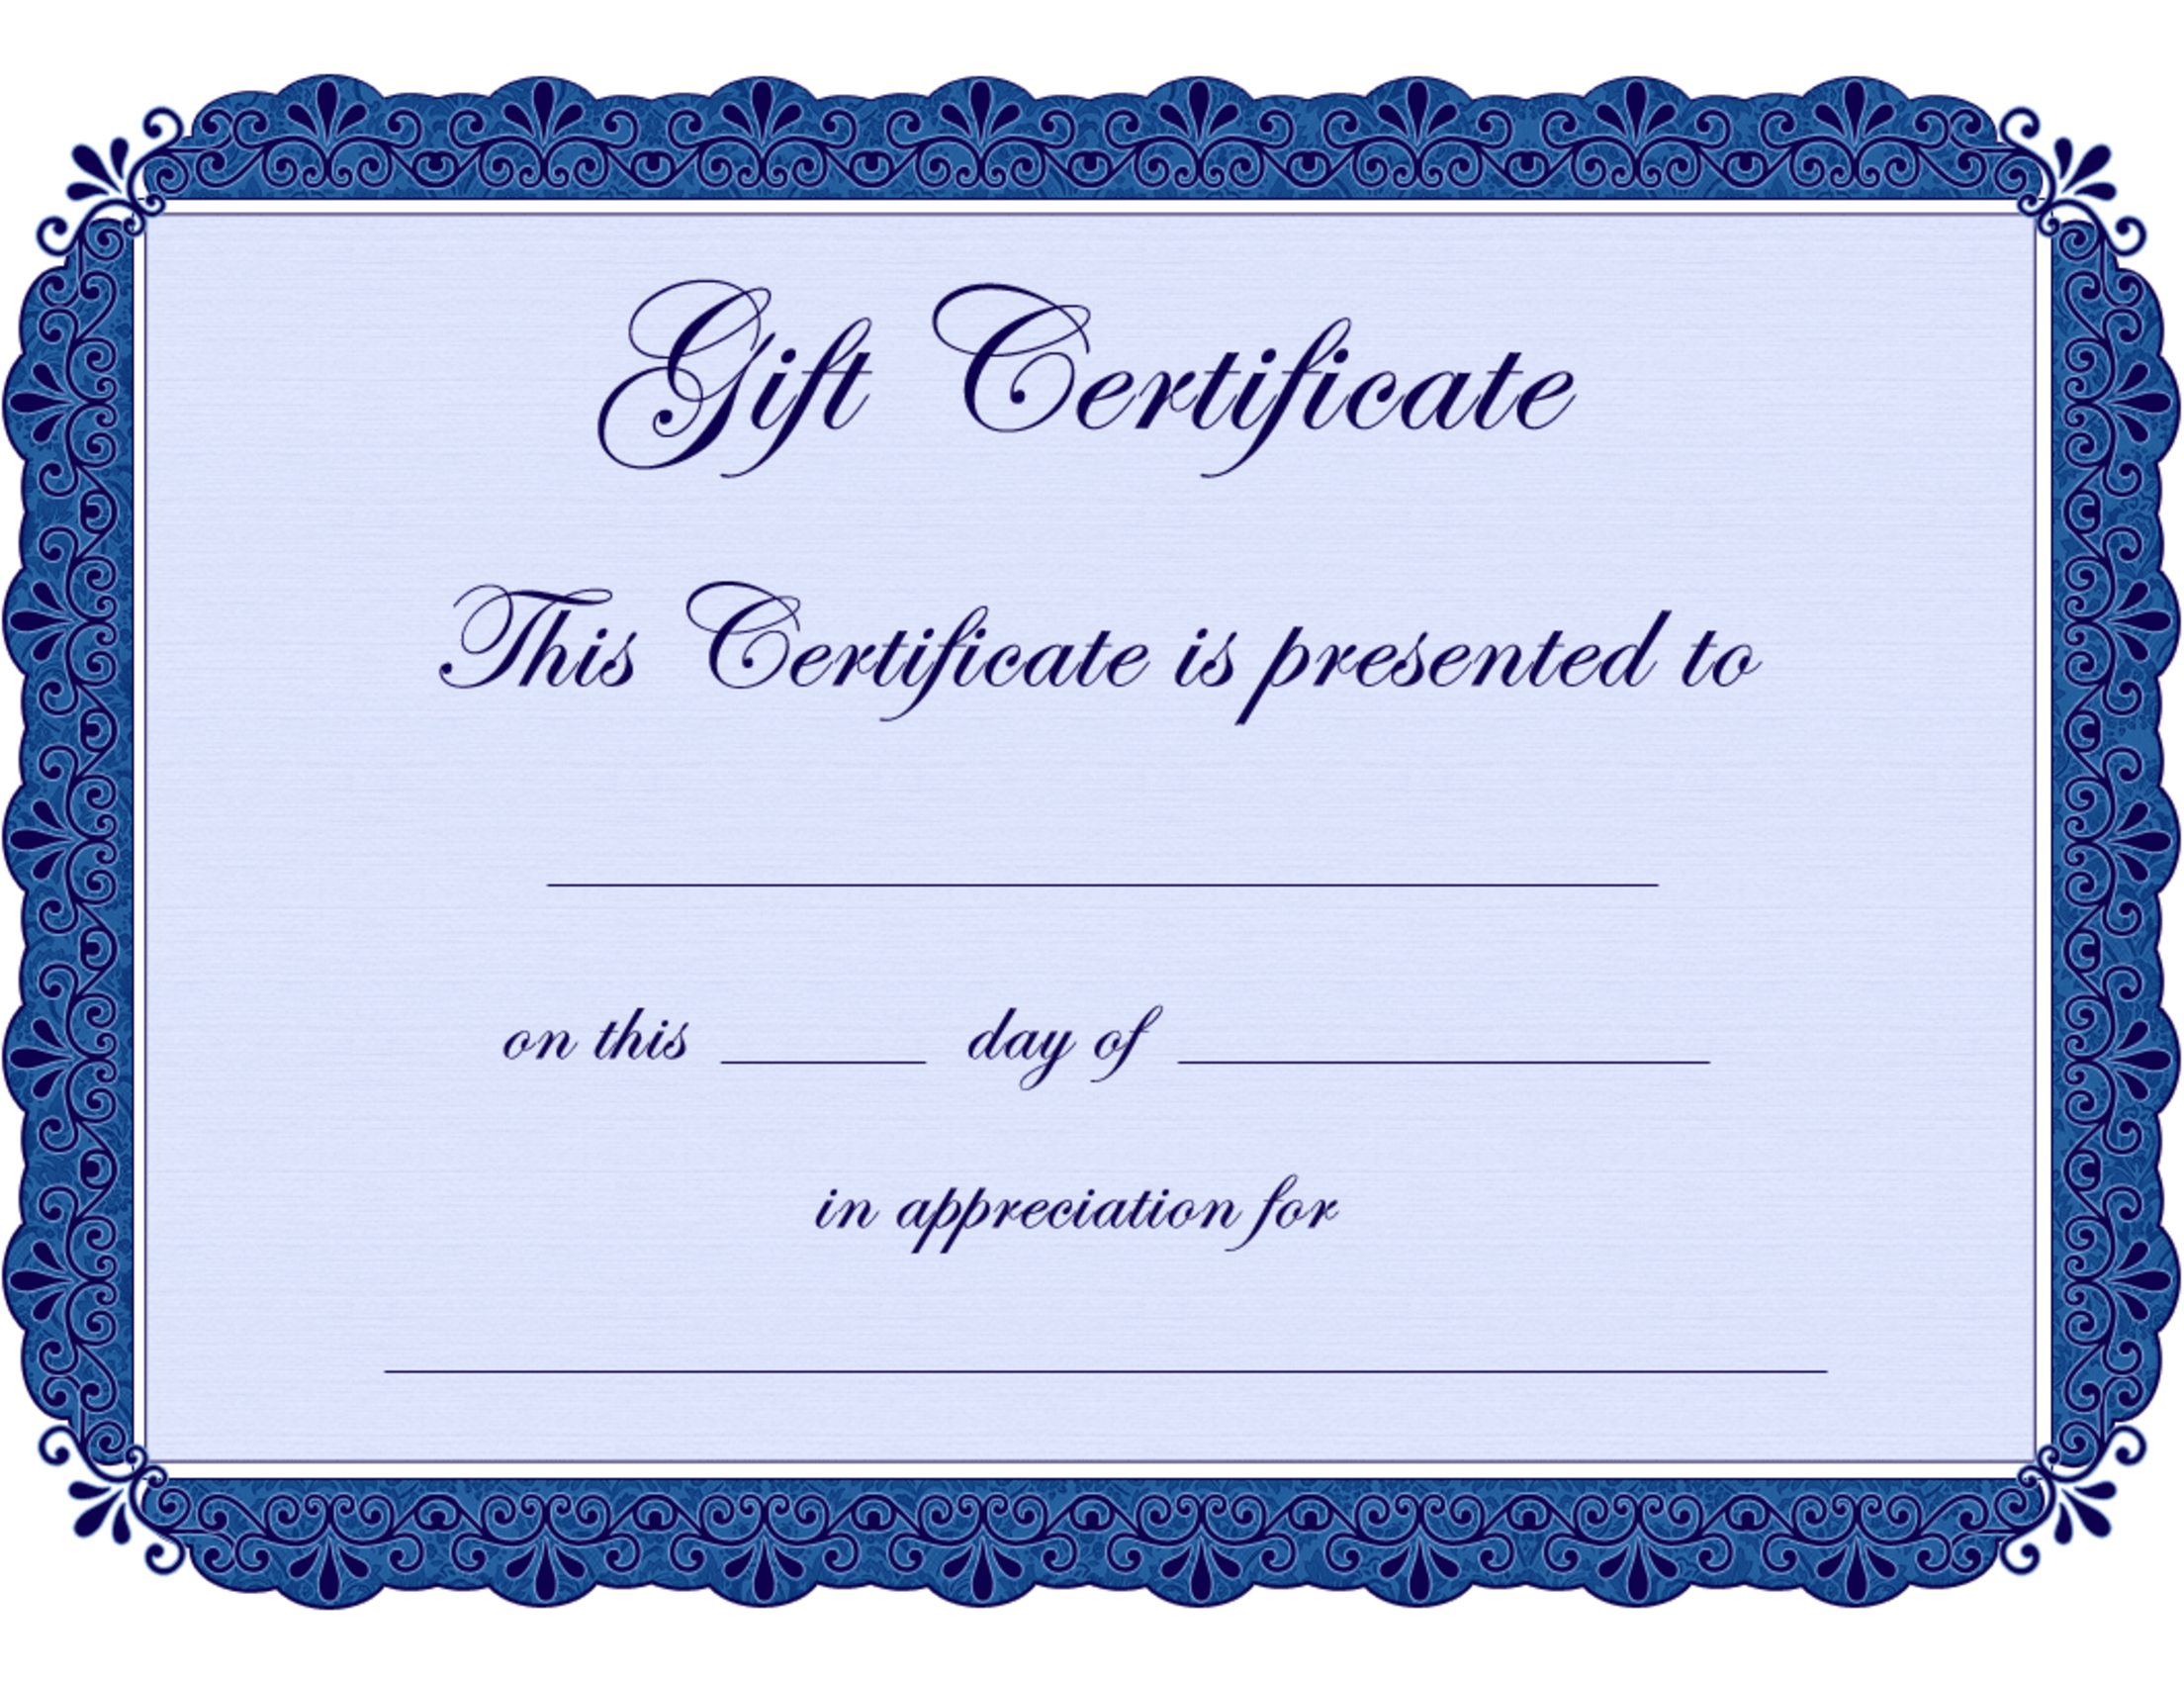 Free Gift Certificate Cliparts, Download Free Clip Art, Free.